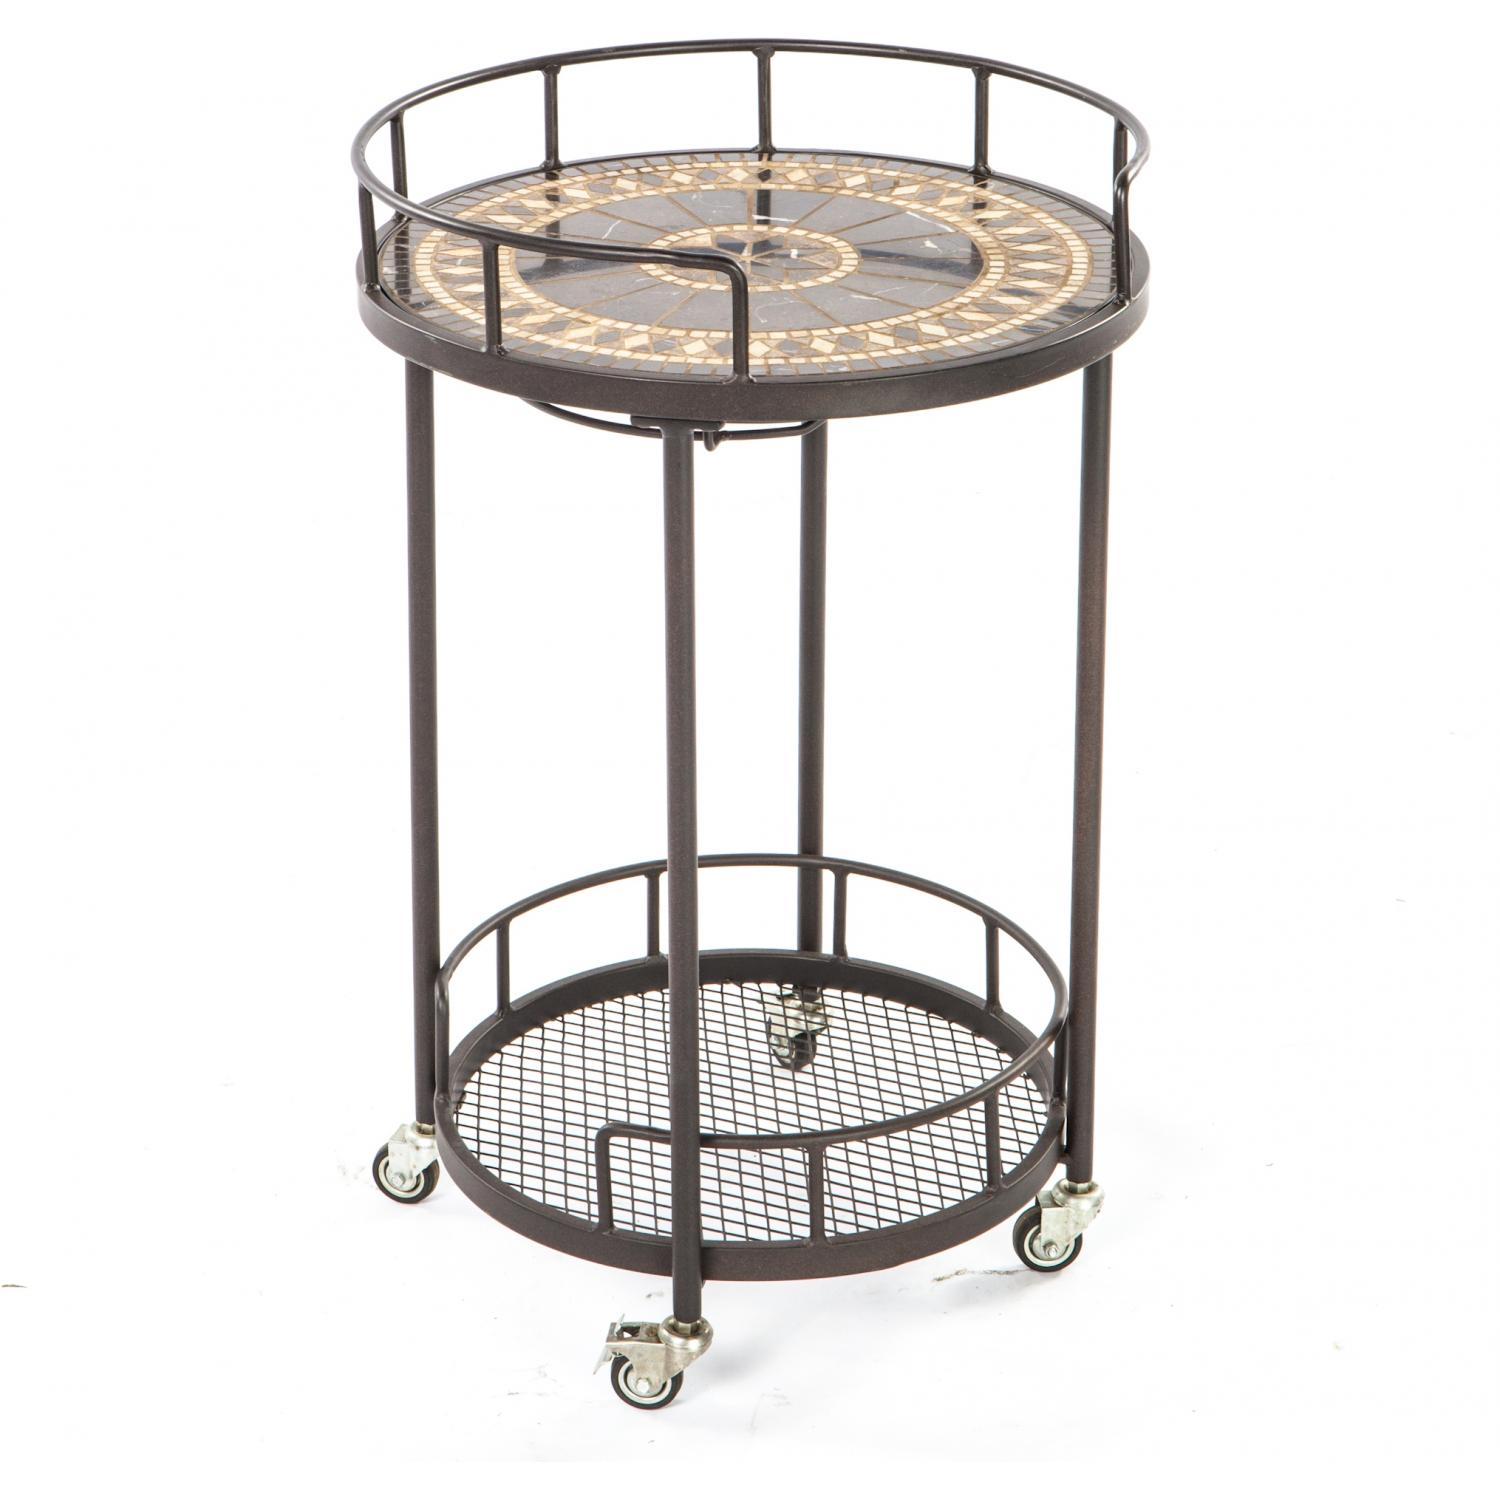 Alfresco Home Gibraltar Mosaic Outdoor Serving Cart at Sears.com